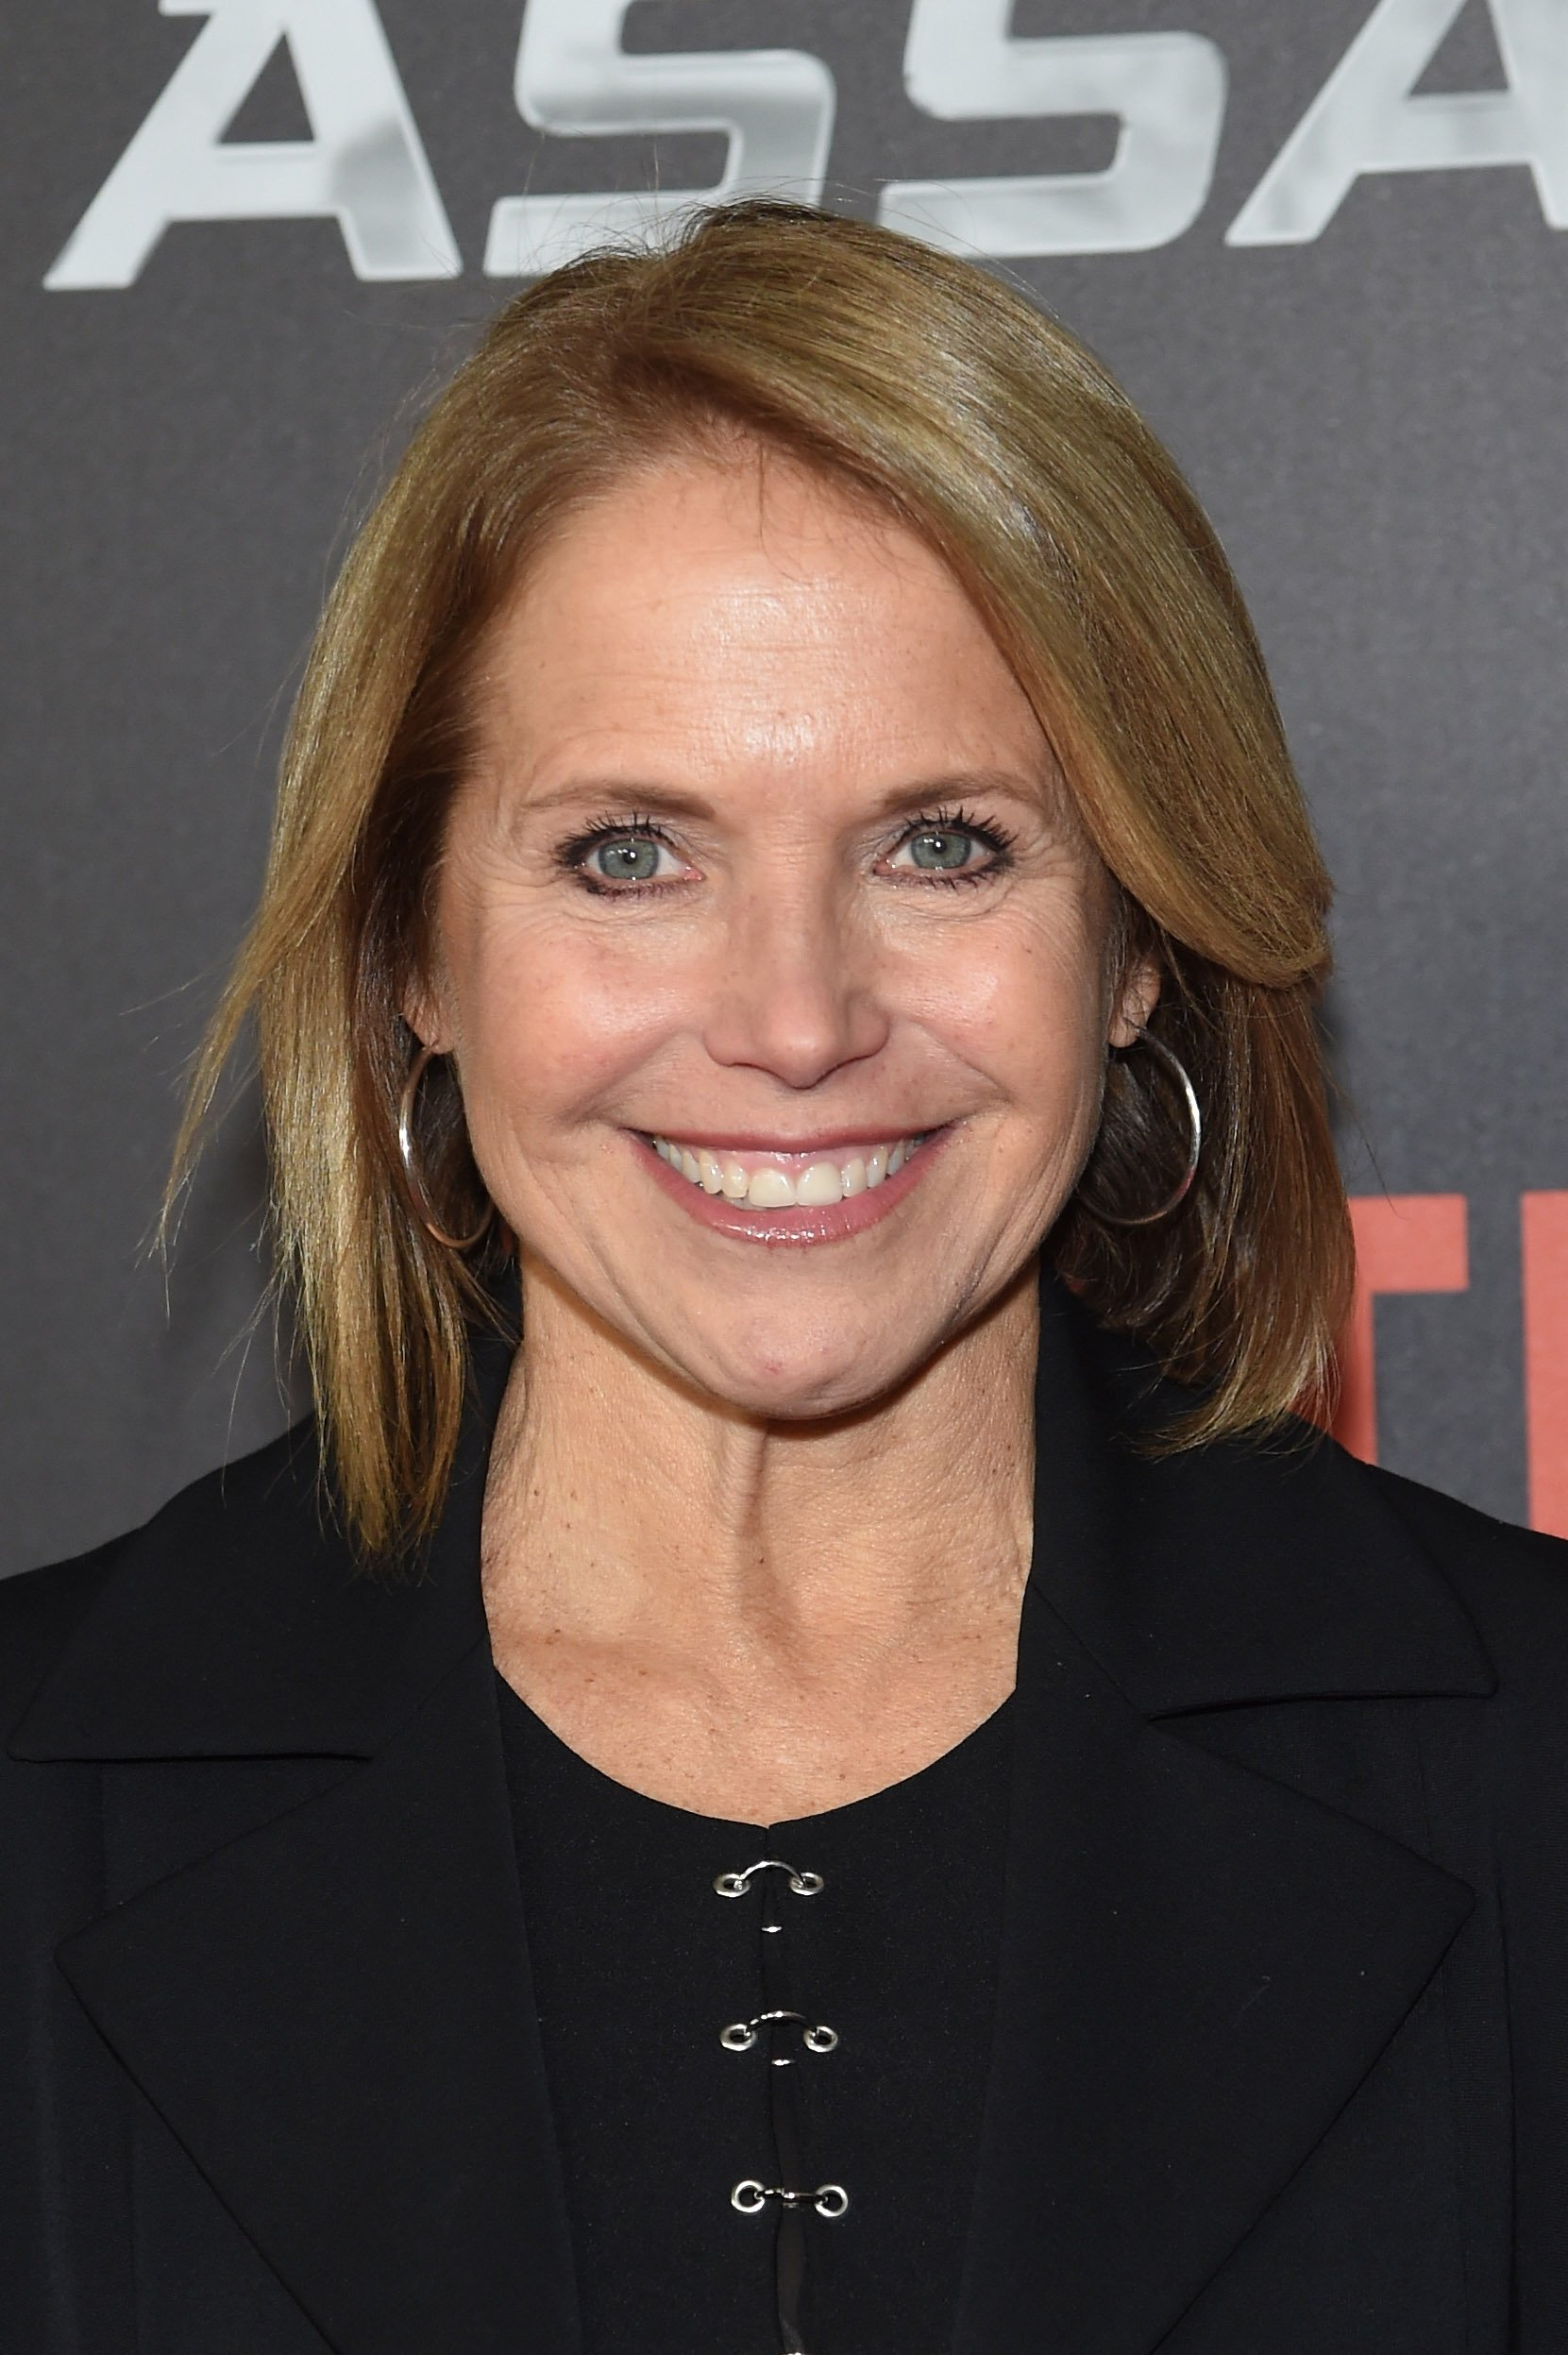 Katie Couric Attends 'True Memoirs Of An International Assassin' Premiere